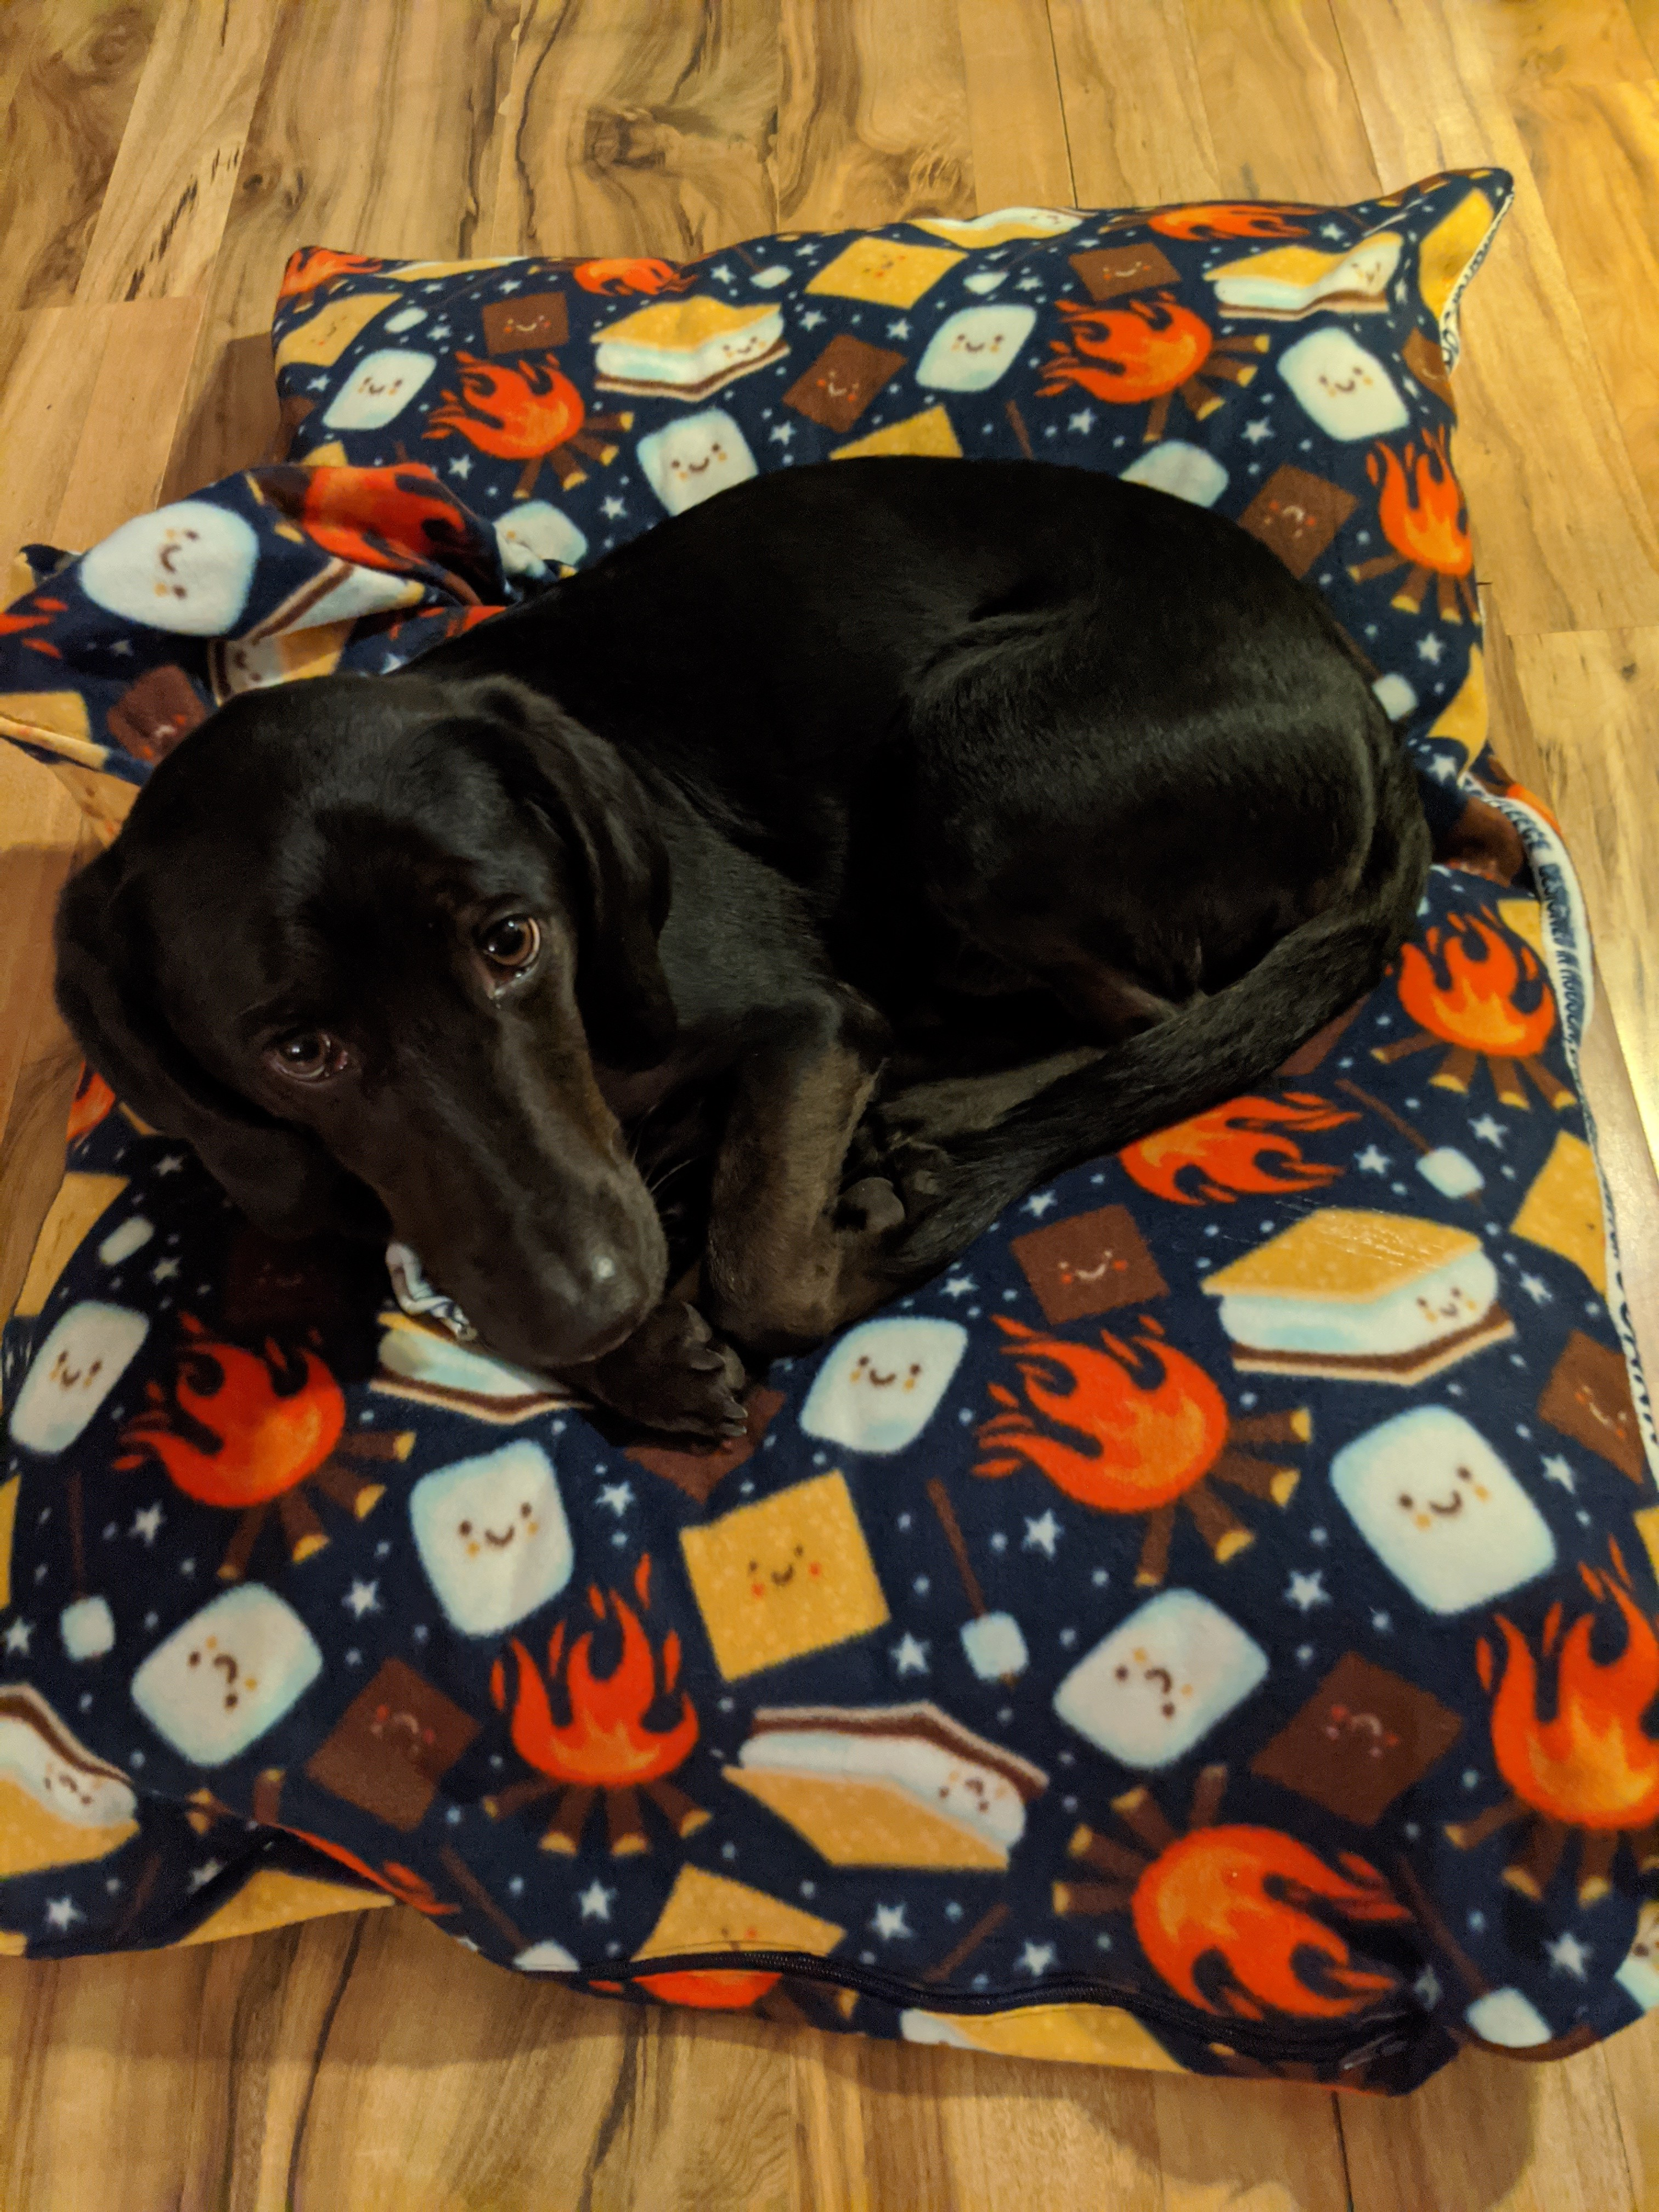 Loche on his new dog bed -- a navy bed with smores on it.